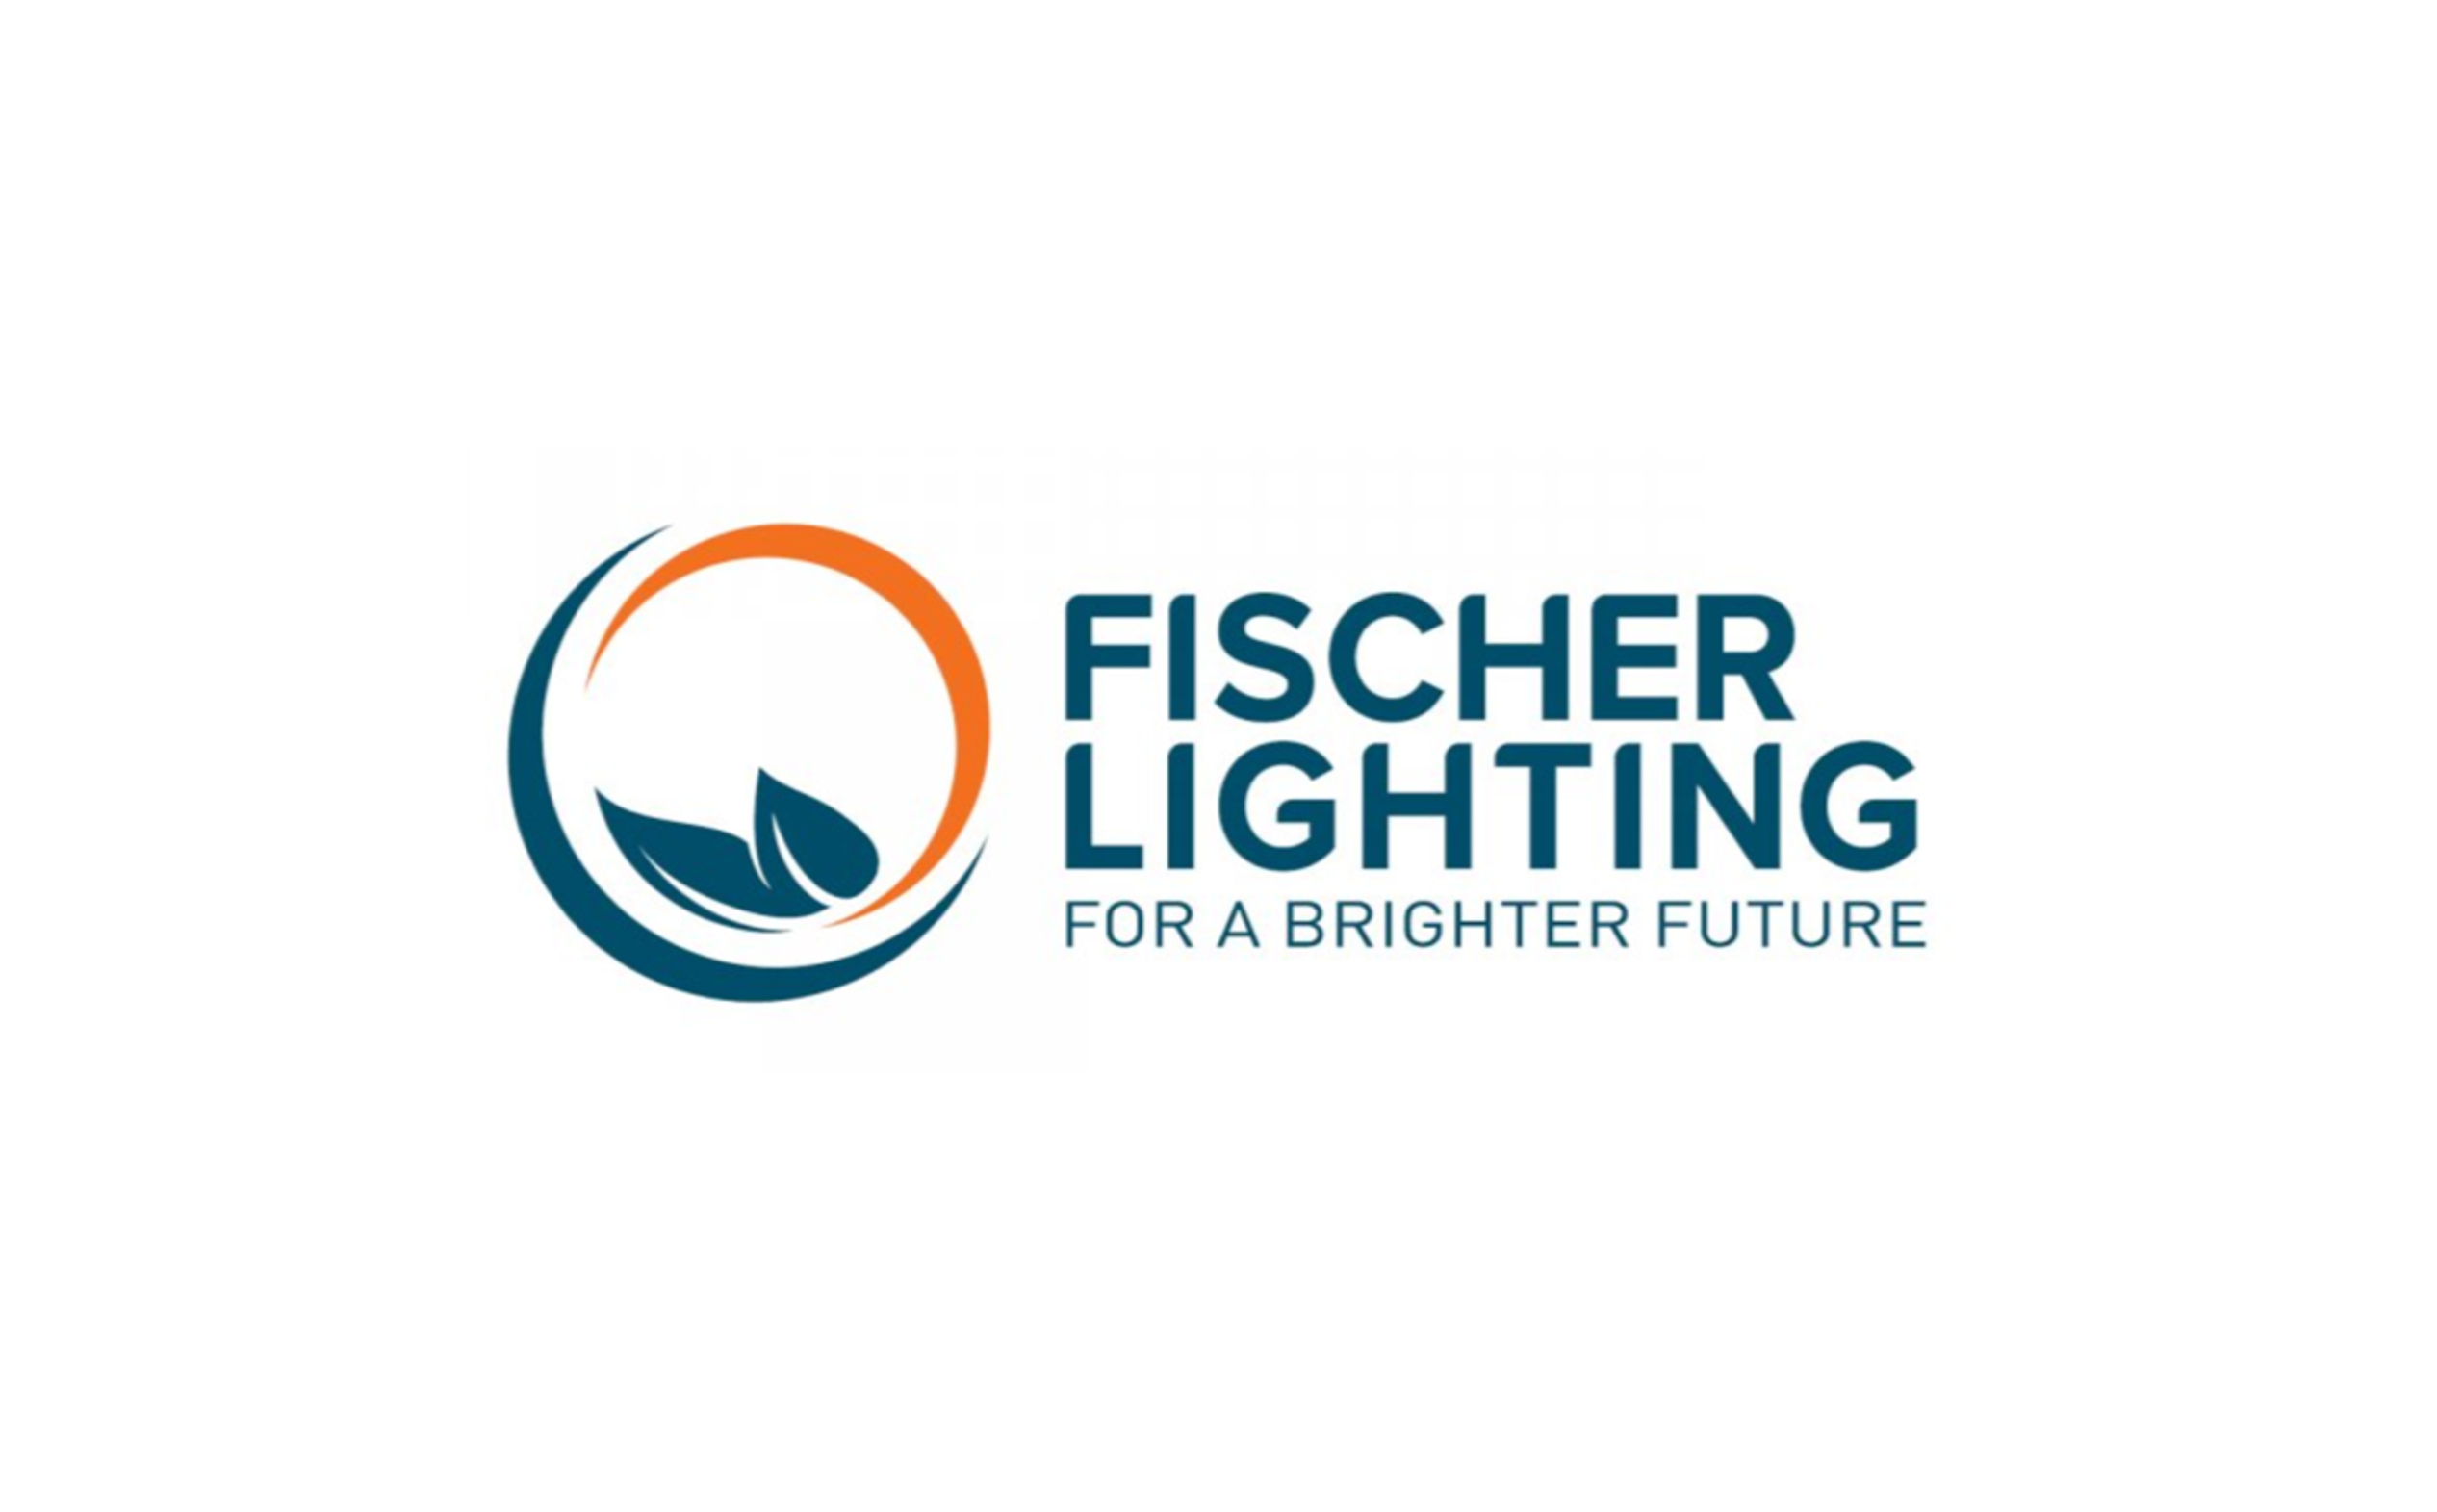 fischer lighting